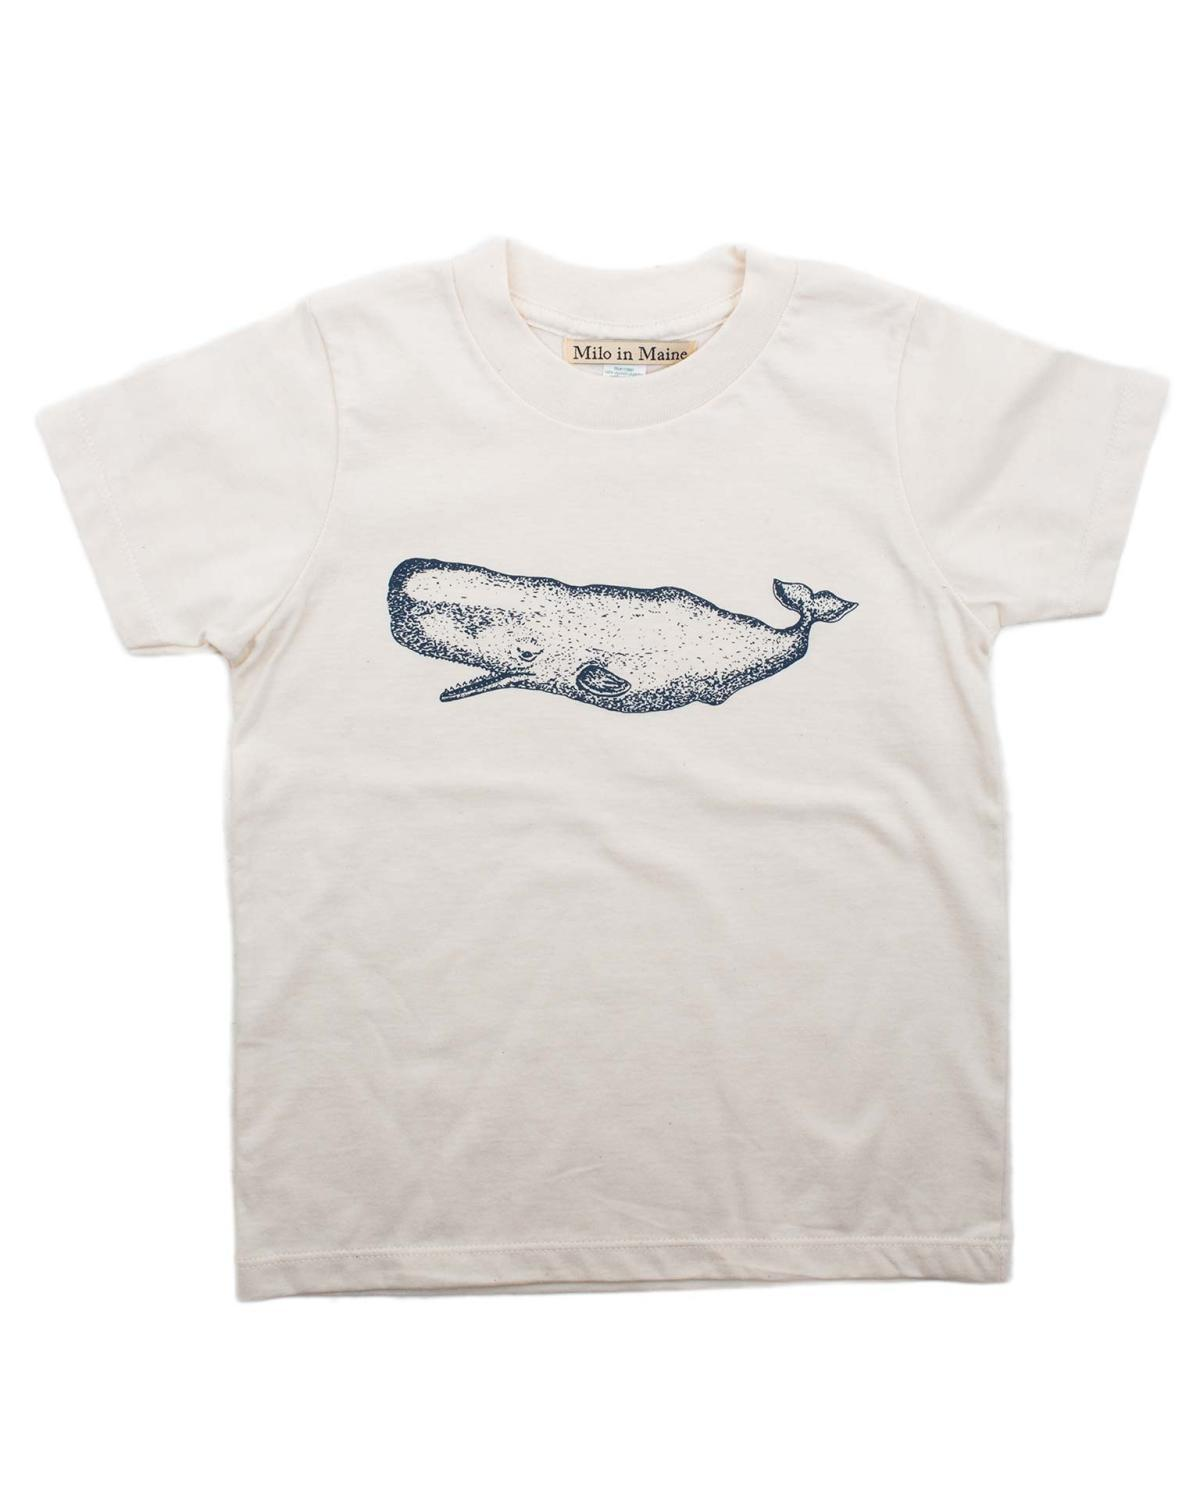 Little milo in maine boy 2 whale tee in natural + navy